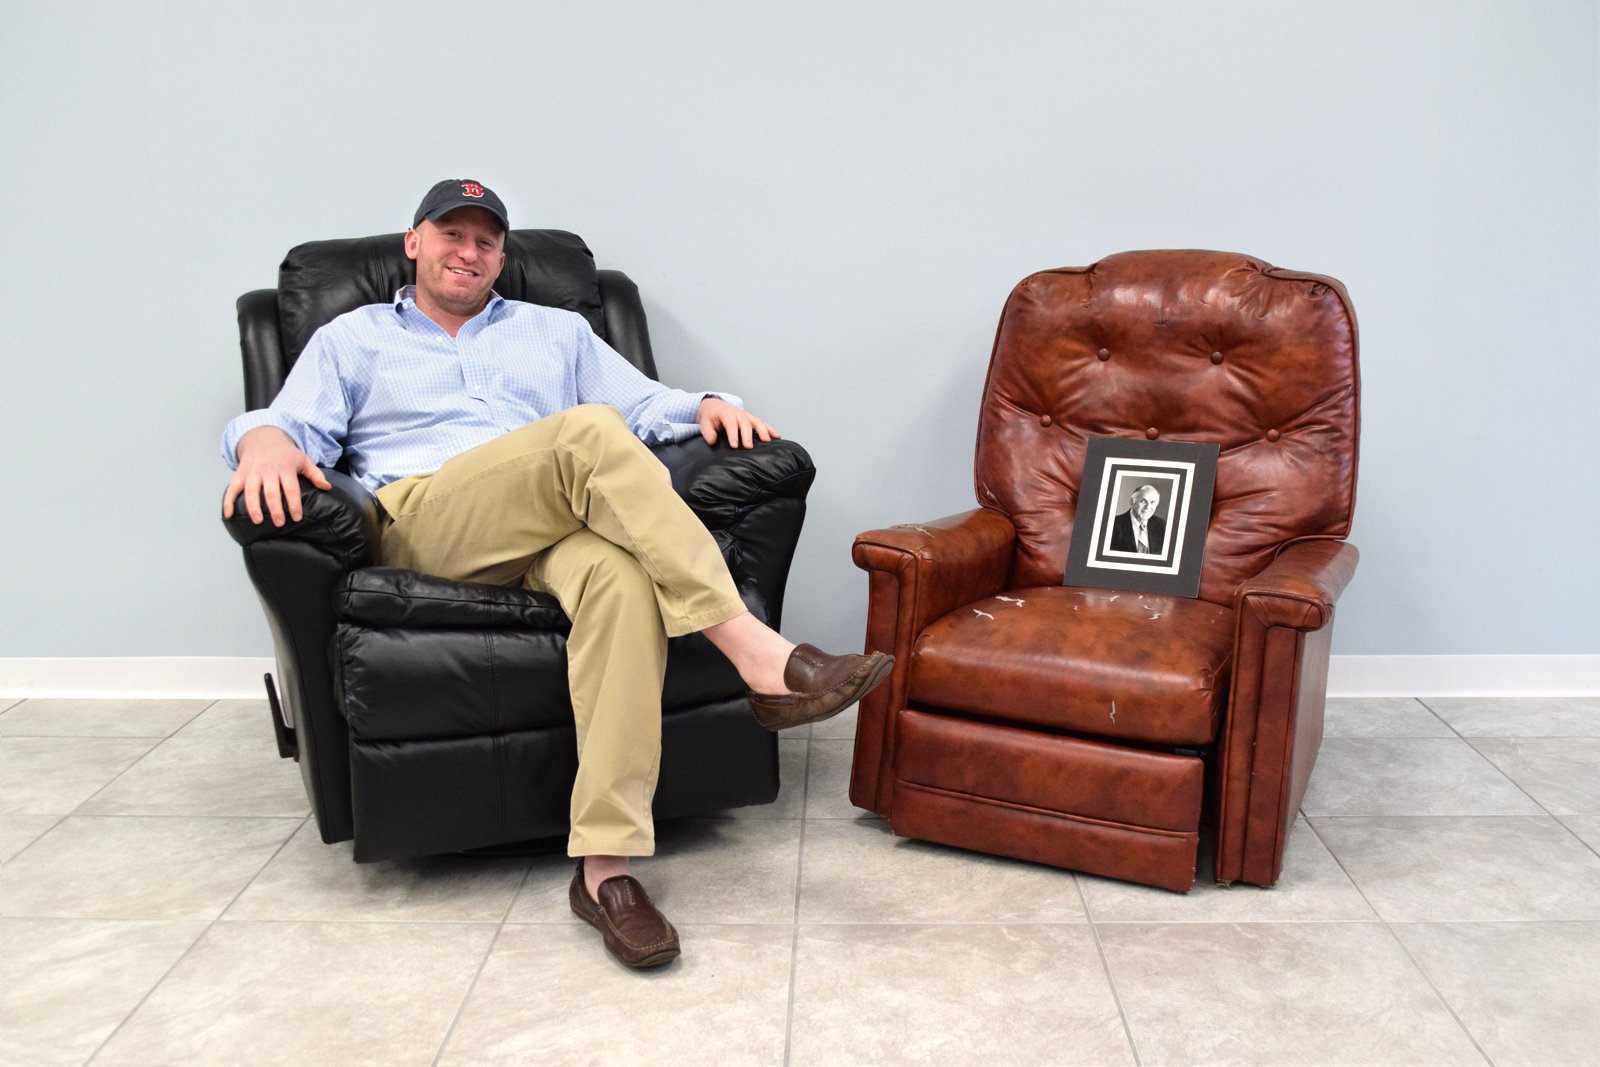 OFS Founder, Mayer alongside his grandfather's chair